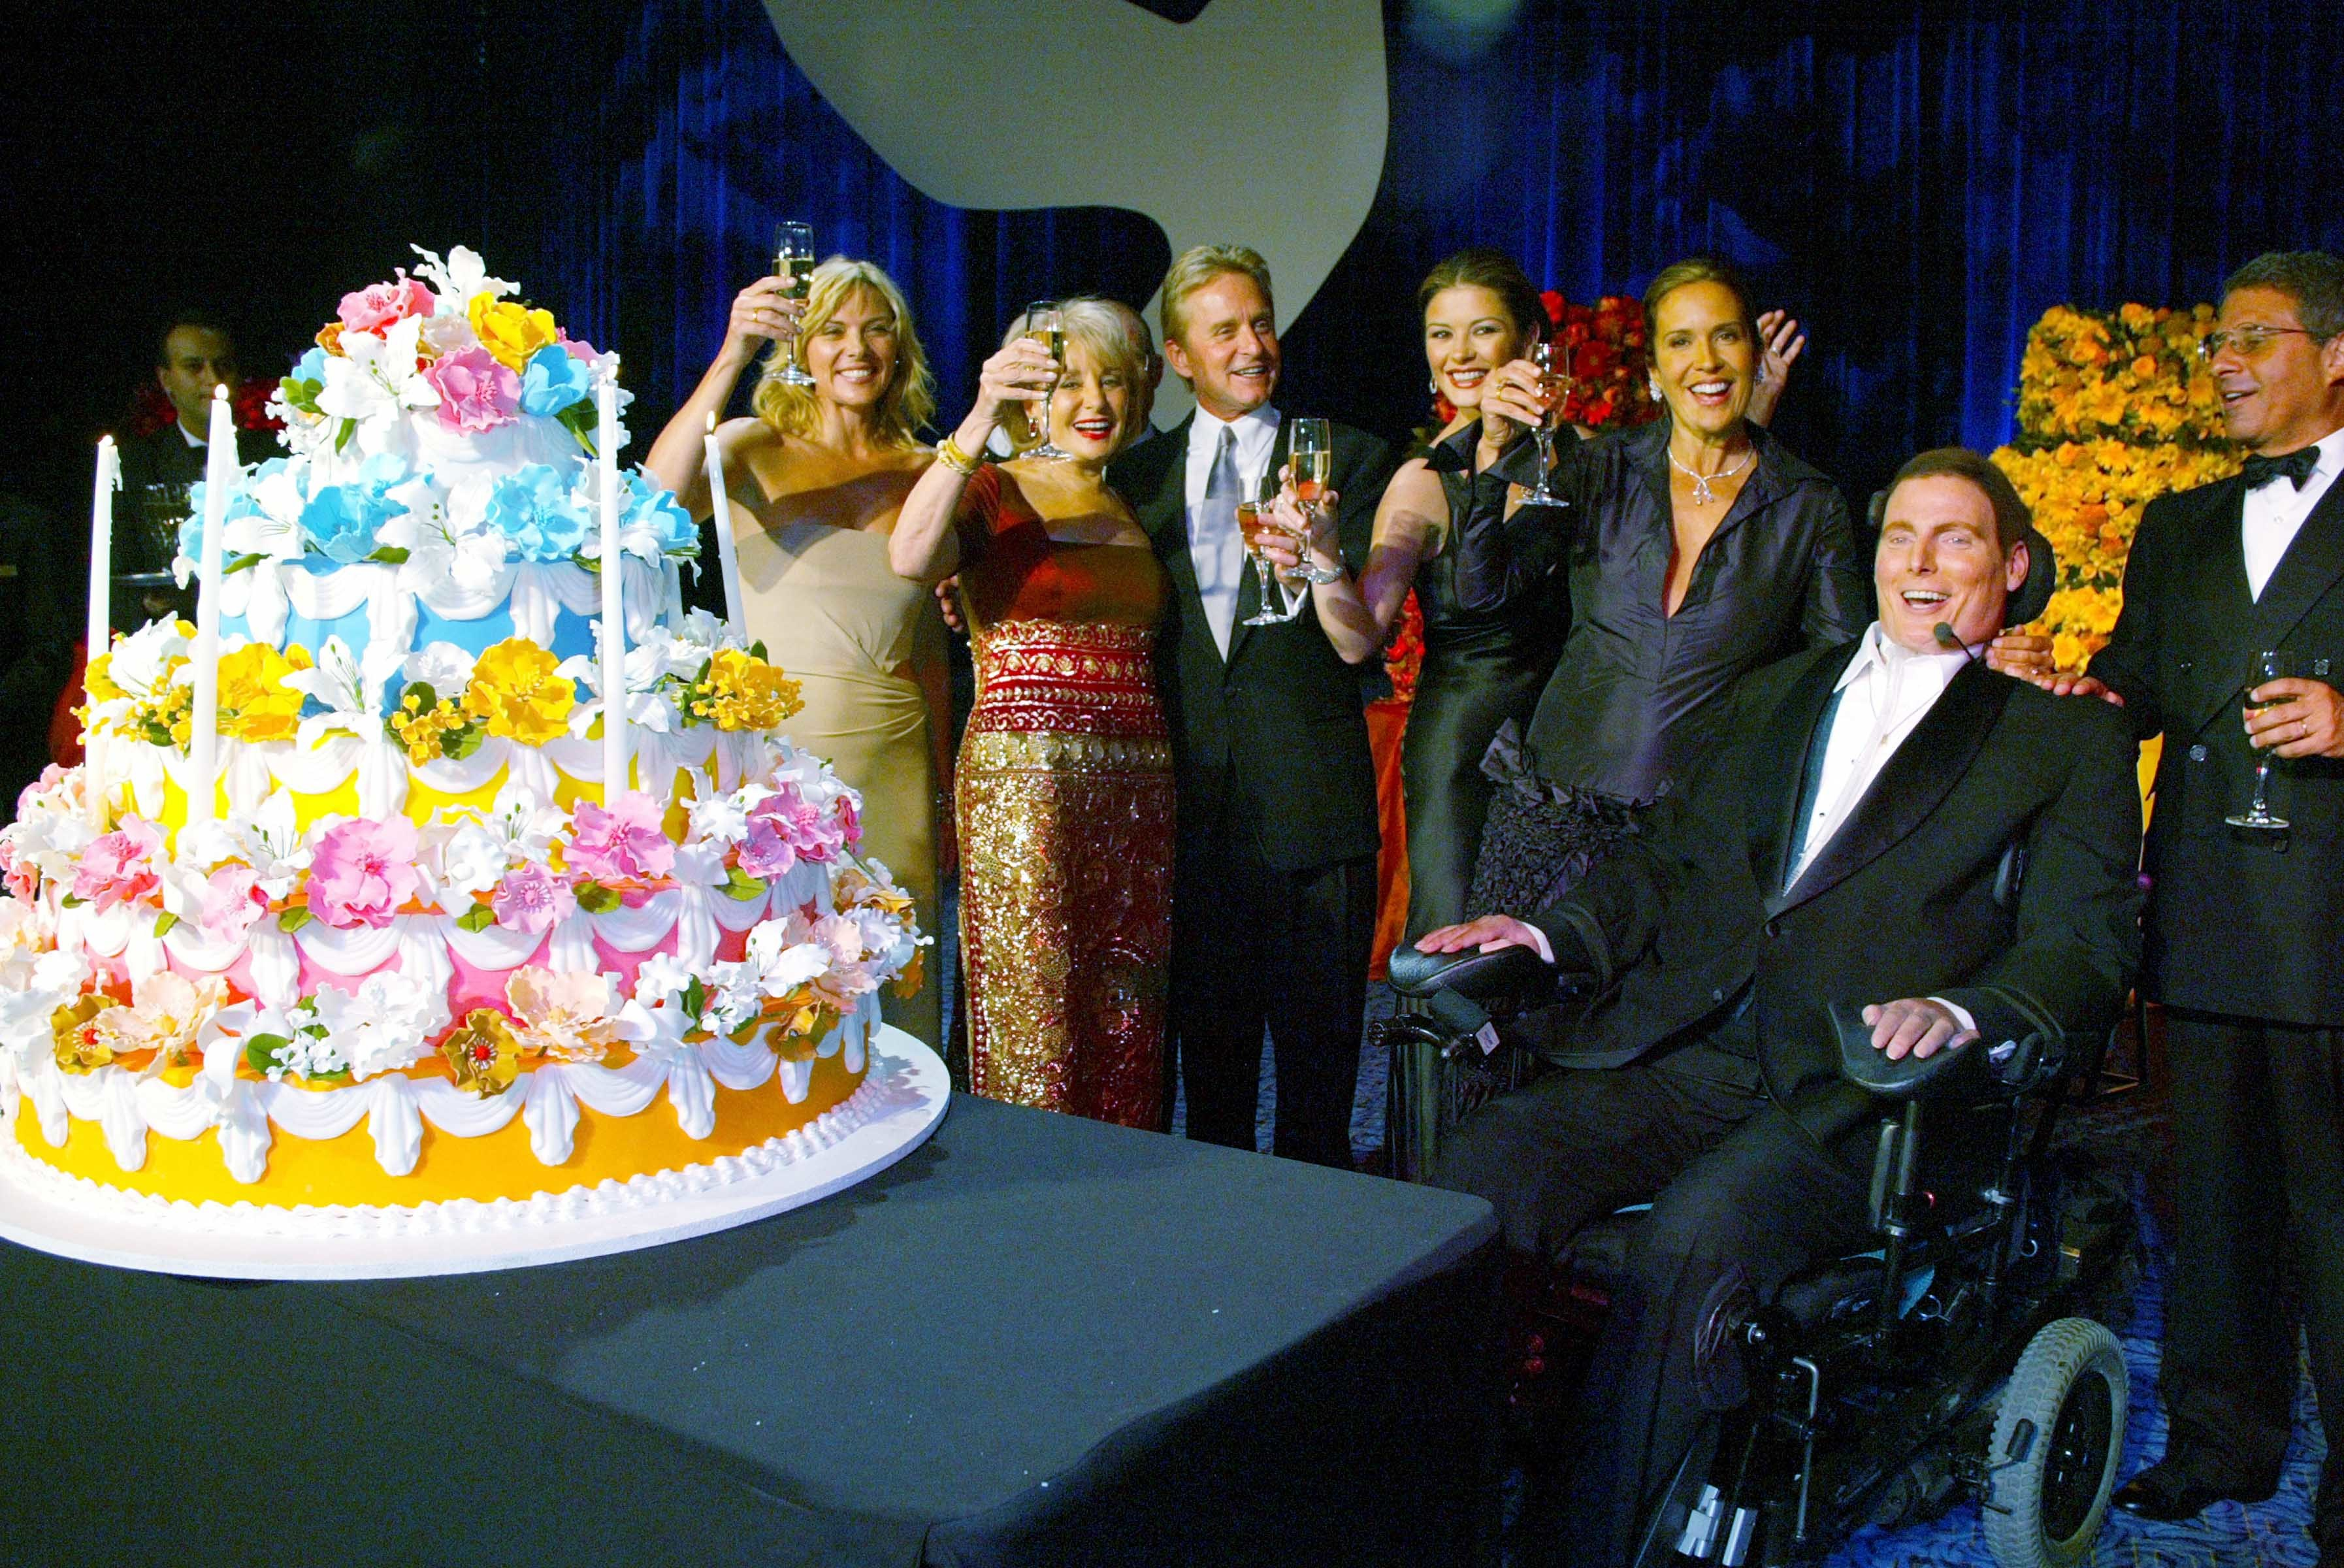 9/25 Club – In 2002, we held a special A Magical Evening on Christopher Reeve's birthday where he celebrated with other birthday buddies Barbara Walters, Michael Douglas and Catherine Zeta-Jones.